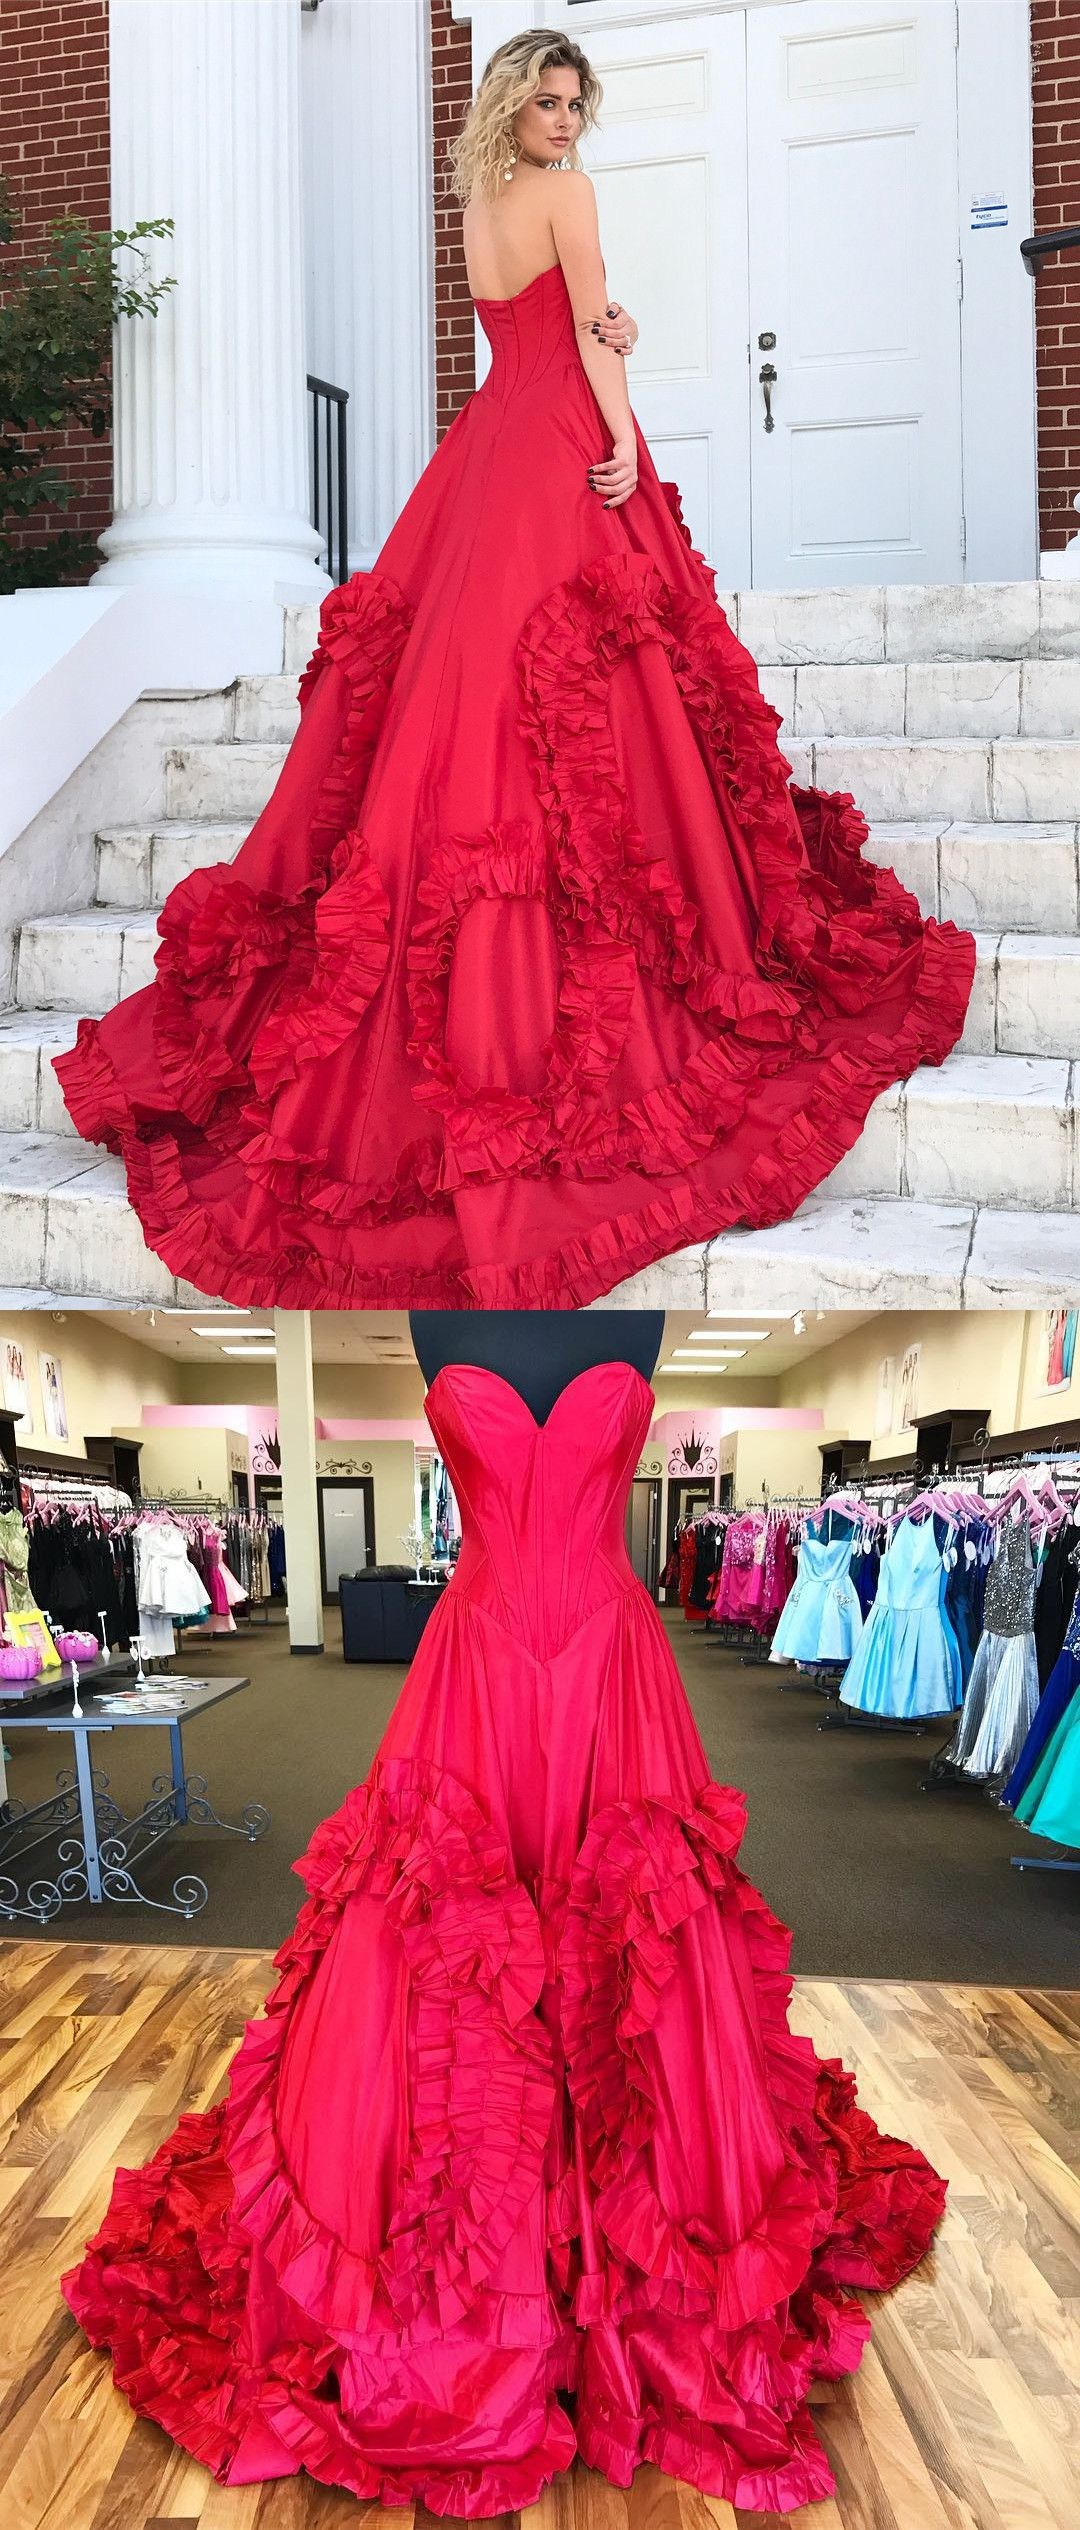 Strapless red long prom dress gown red long sweet dress